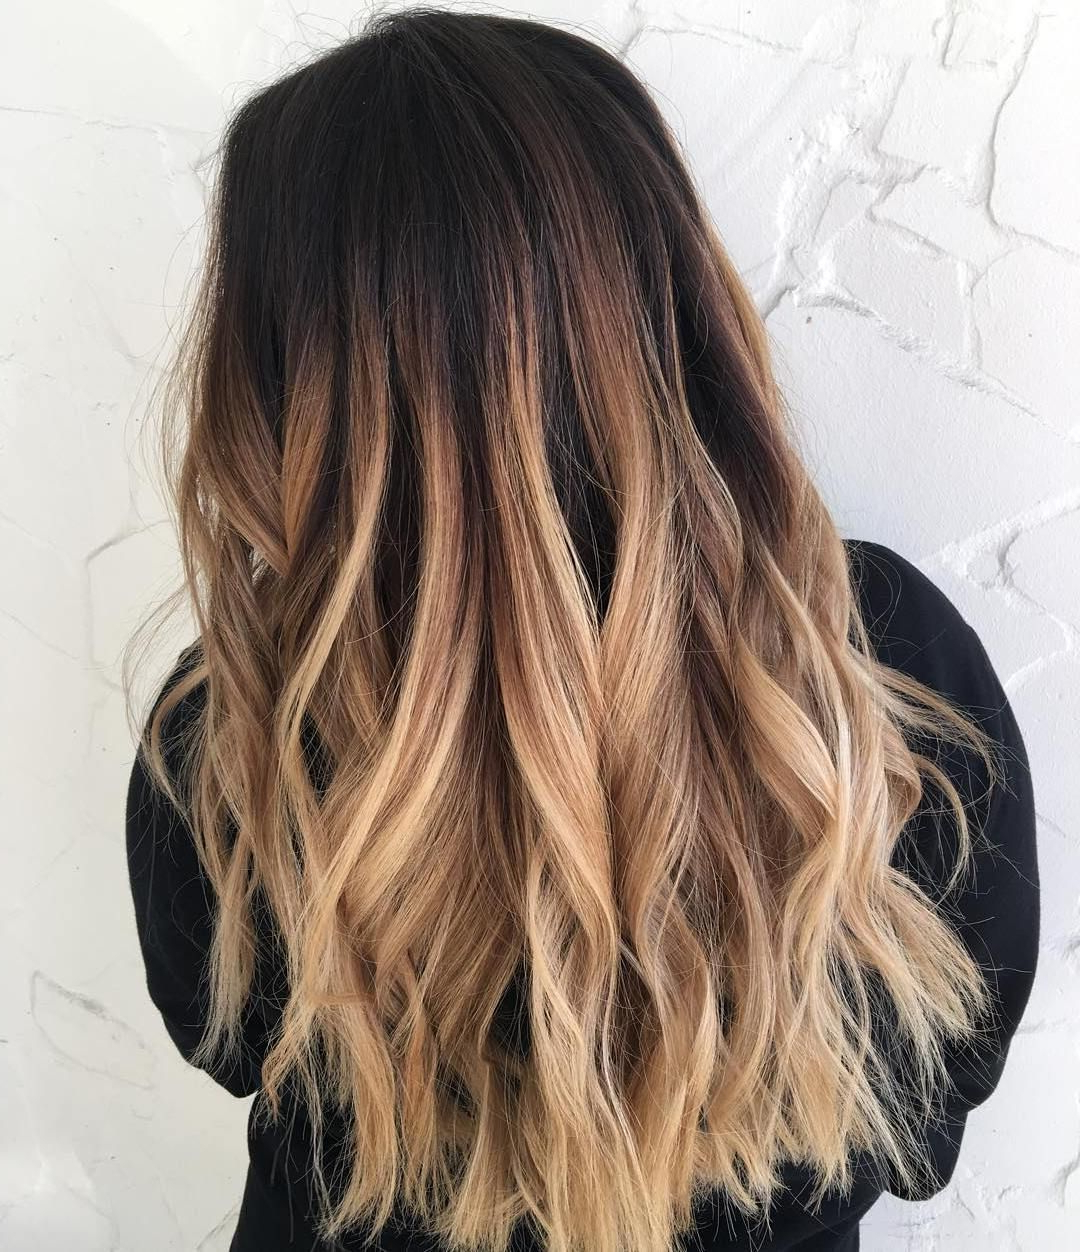 60 Best Ombre Hair Color Ideas For Blond, Brown, Red And Regarding Ash Blonde Balayage Ombre On Dark Hairstyles (View 10 of 20)